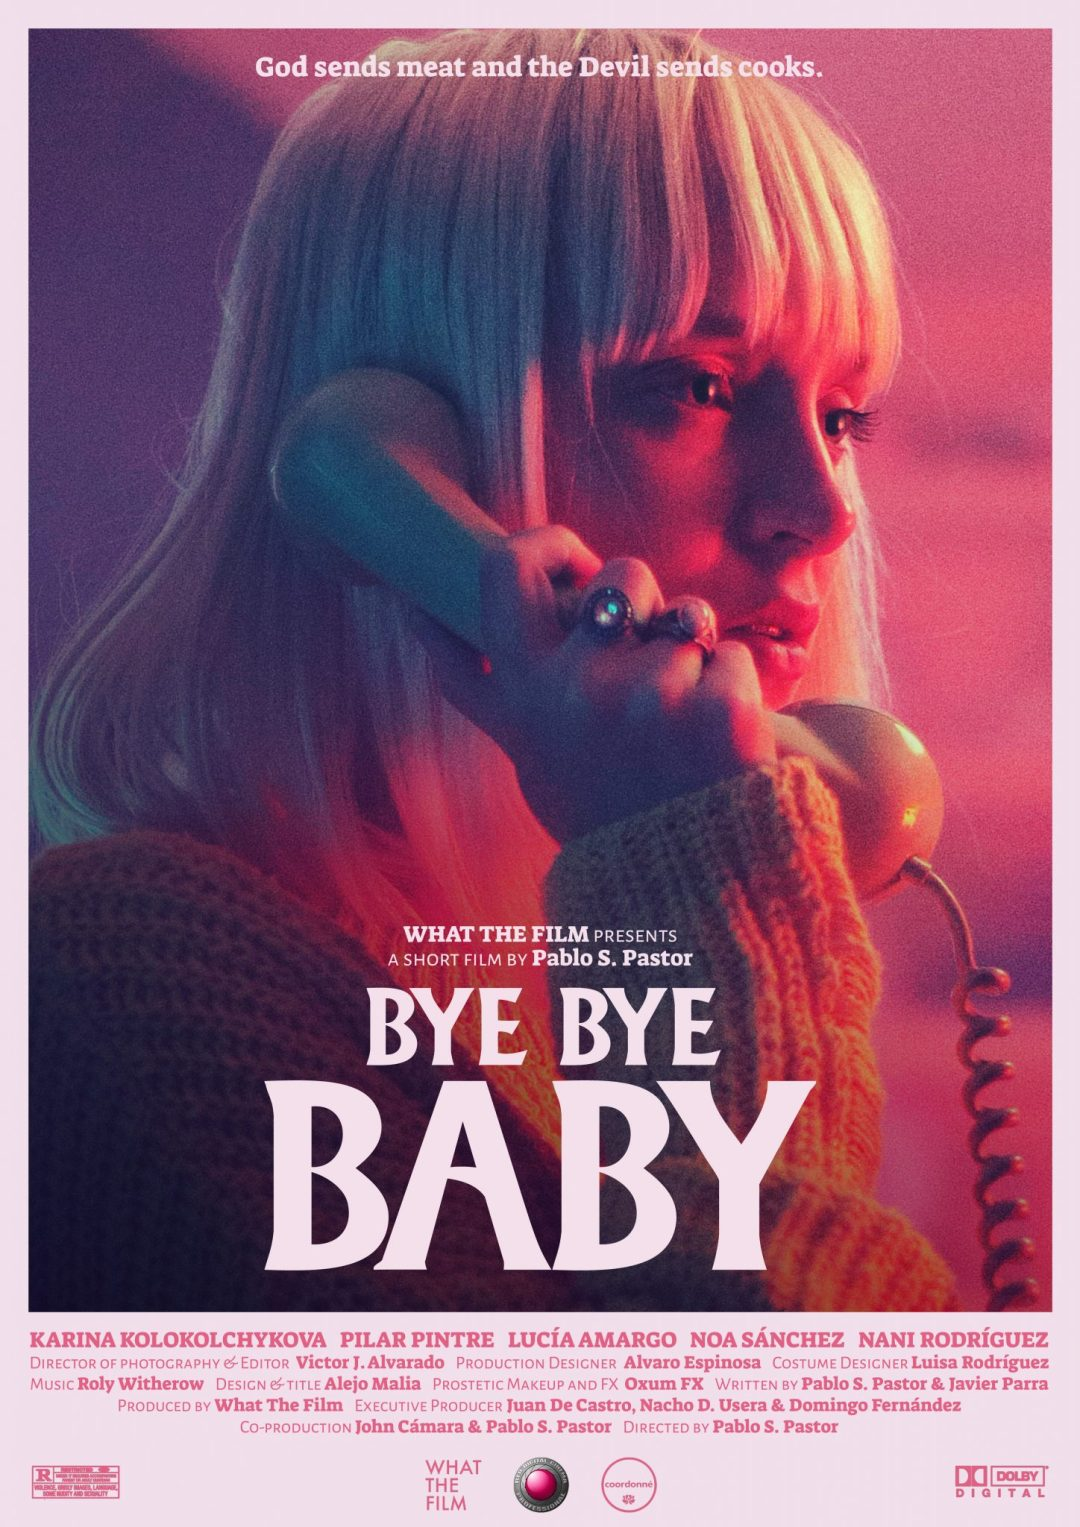 'Bye Bye Baby' is Part of Sitges Festival's OFFICIAL SECTION in its 50th Anniversary